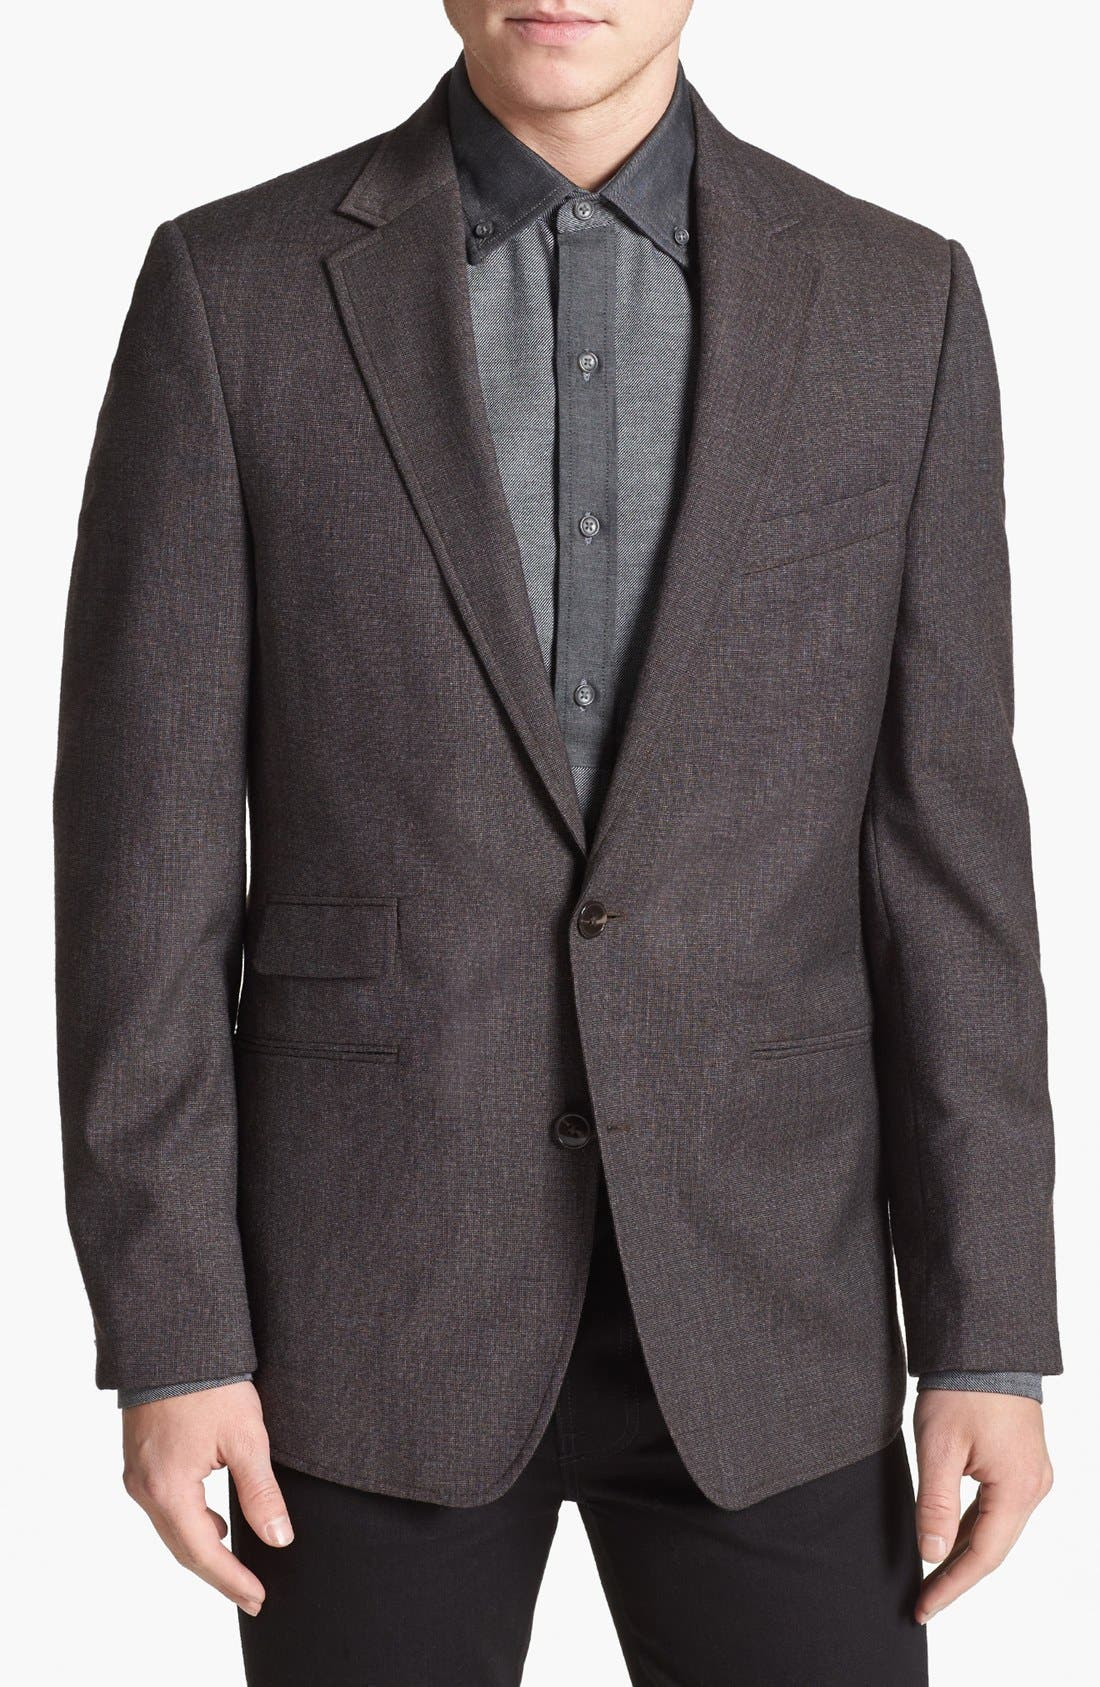 Main Image - Vince Camuto Slim Fit Wool Sportcoat